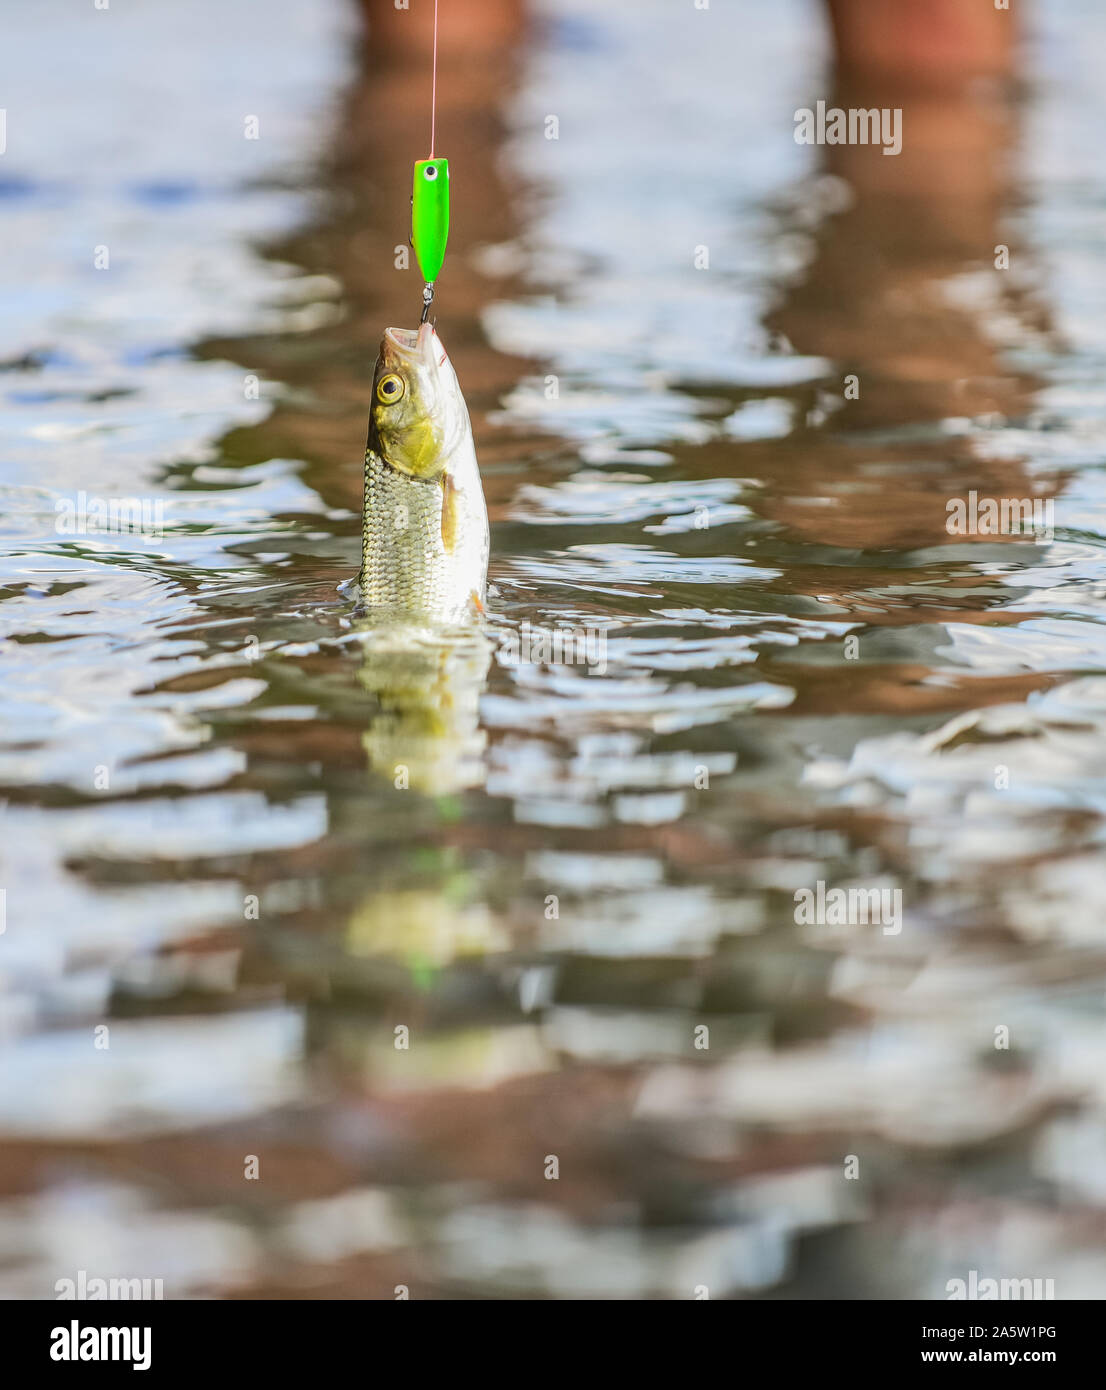 fall into the trap. fish on the hook. trout bait. catch fish. fishing on lake. hobby and sport activity. good catch. fly fishing trout. recreation and leisure outdoor. stalemate and hopelessness. Stock Photo